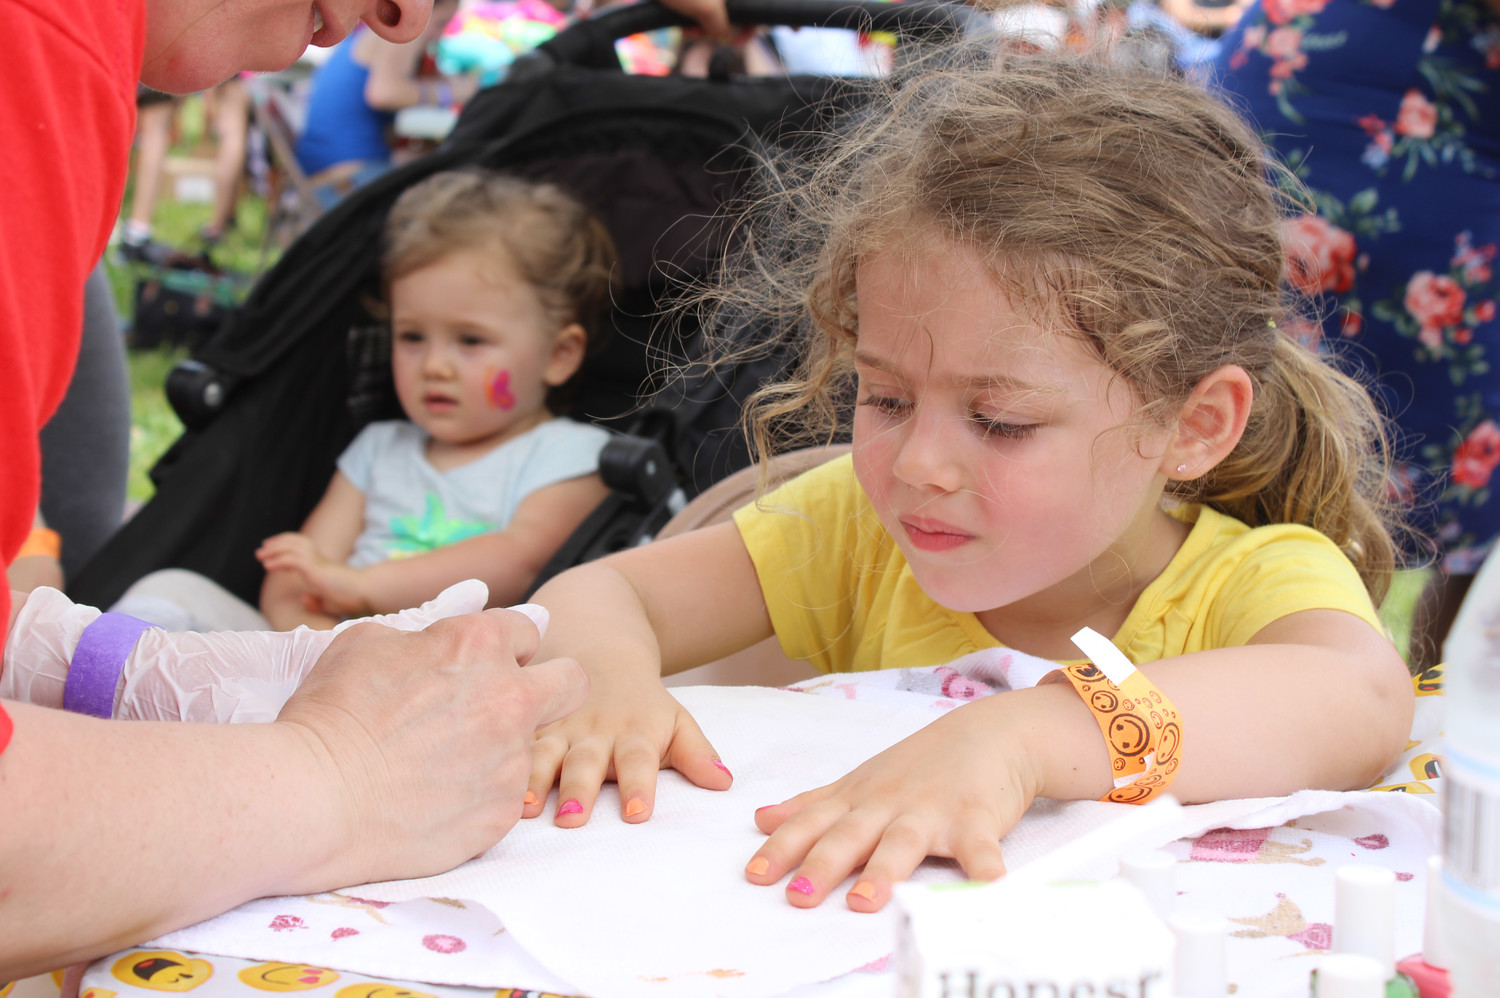 Maia Deoliveira, 4, got her nails painted at Hope Day. Children could also get their faces painted, enjoy bounce houses, snow cones, stuffed animals and books, among other free amenities.